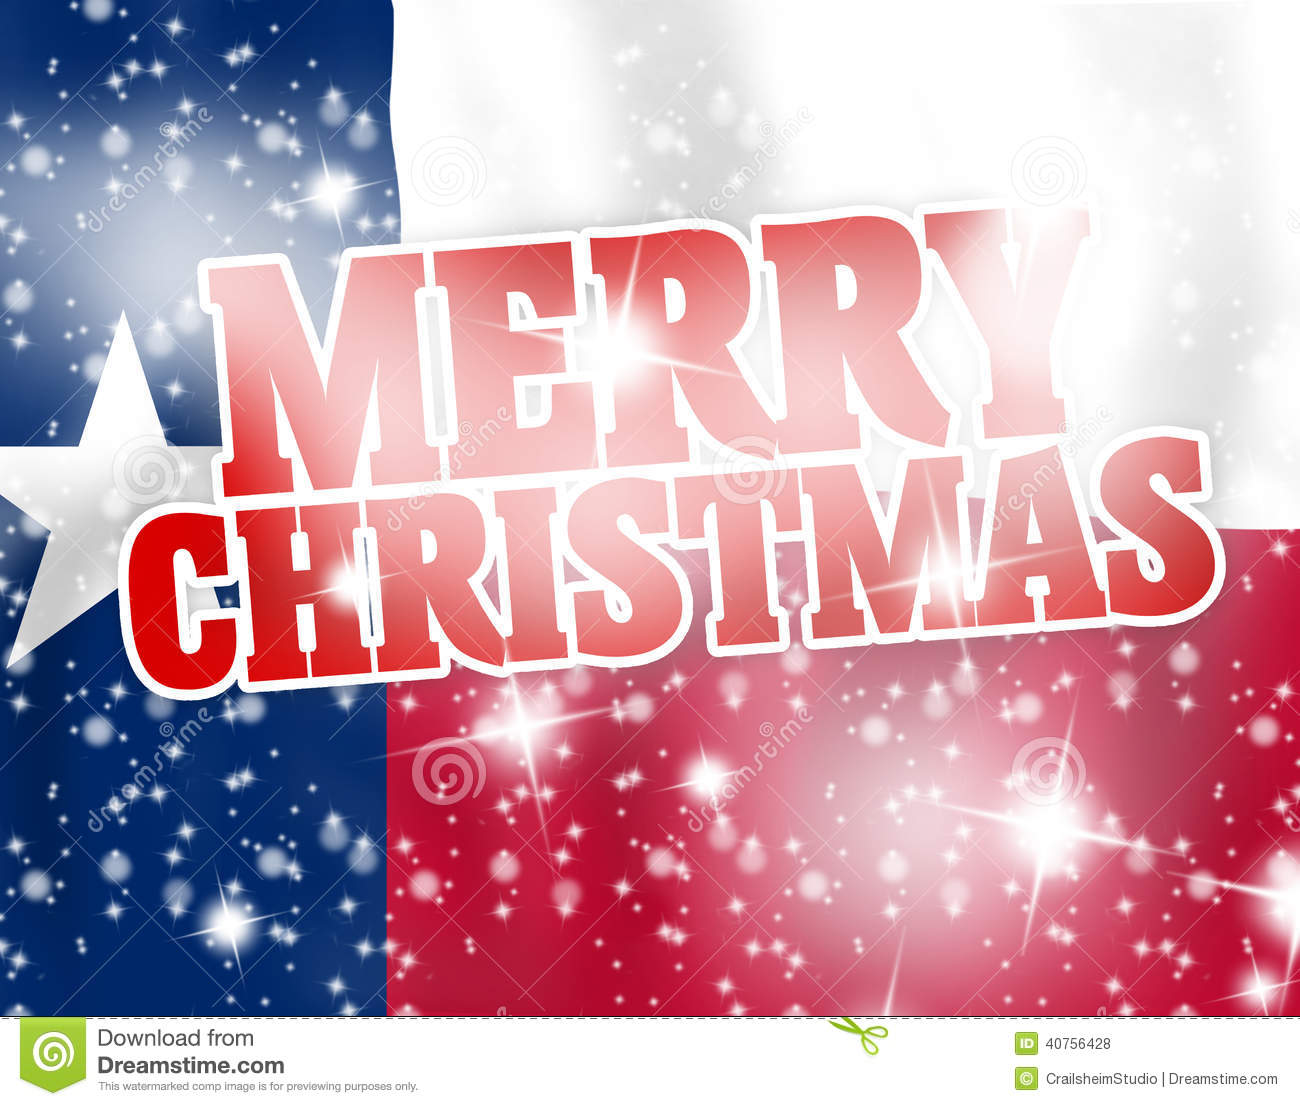 Merry Christmas Texas Flag Stock Photo - Image: 40756428